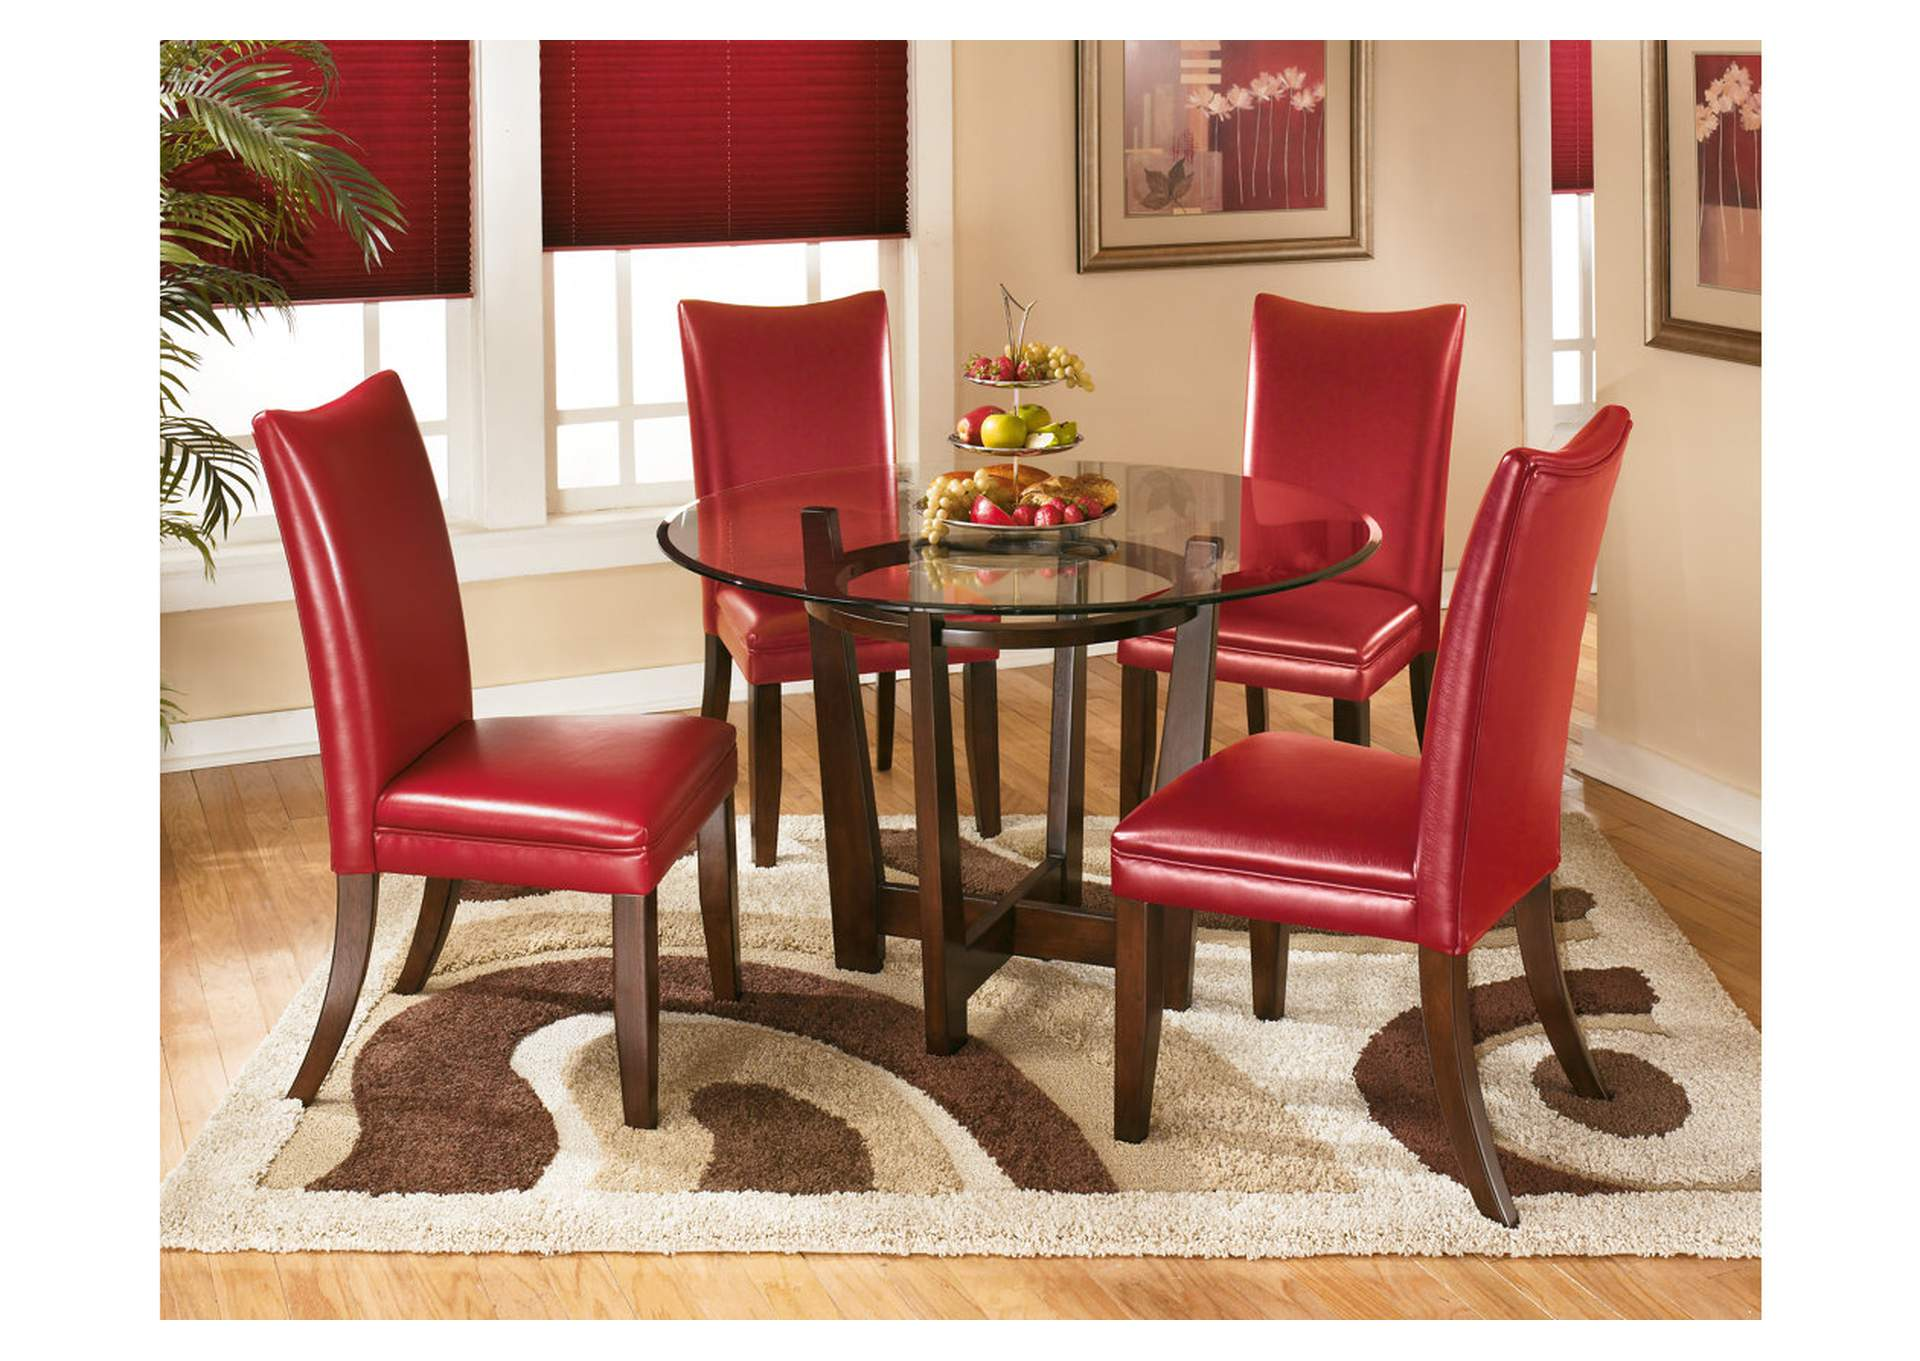 Beautiful Charell Round Dining Table W/4 Red Side Chairs